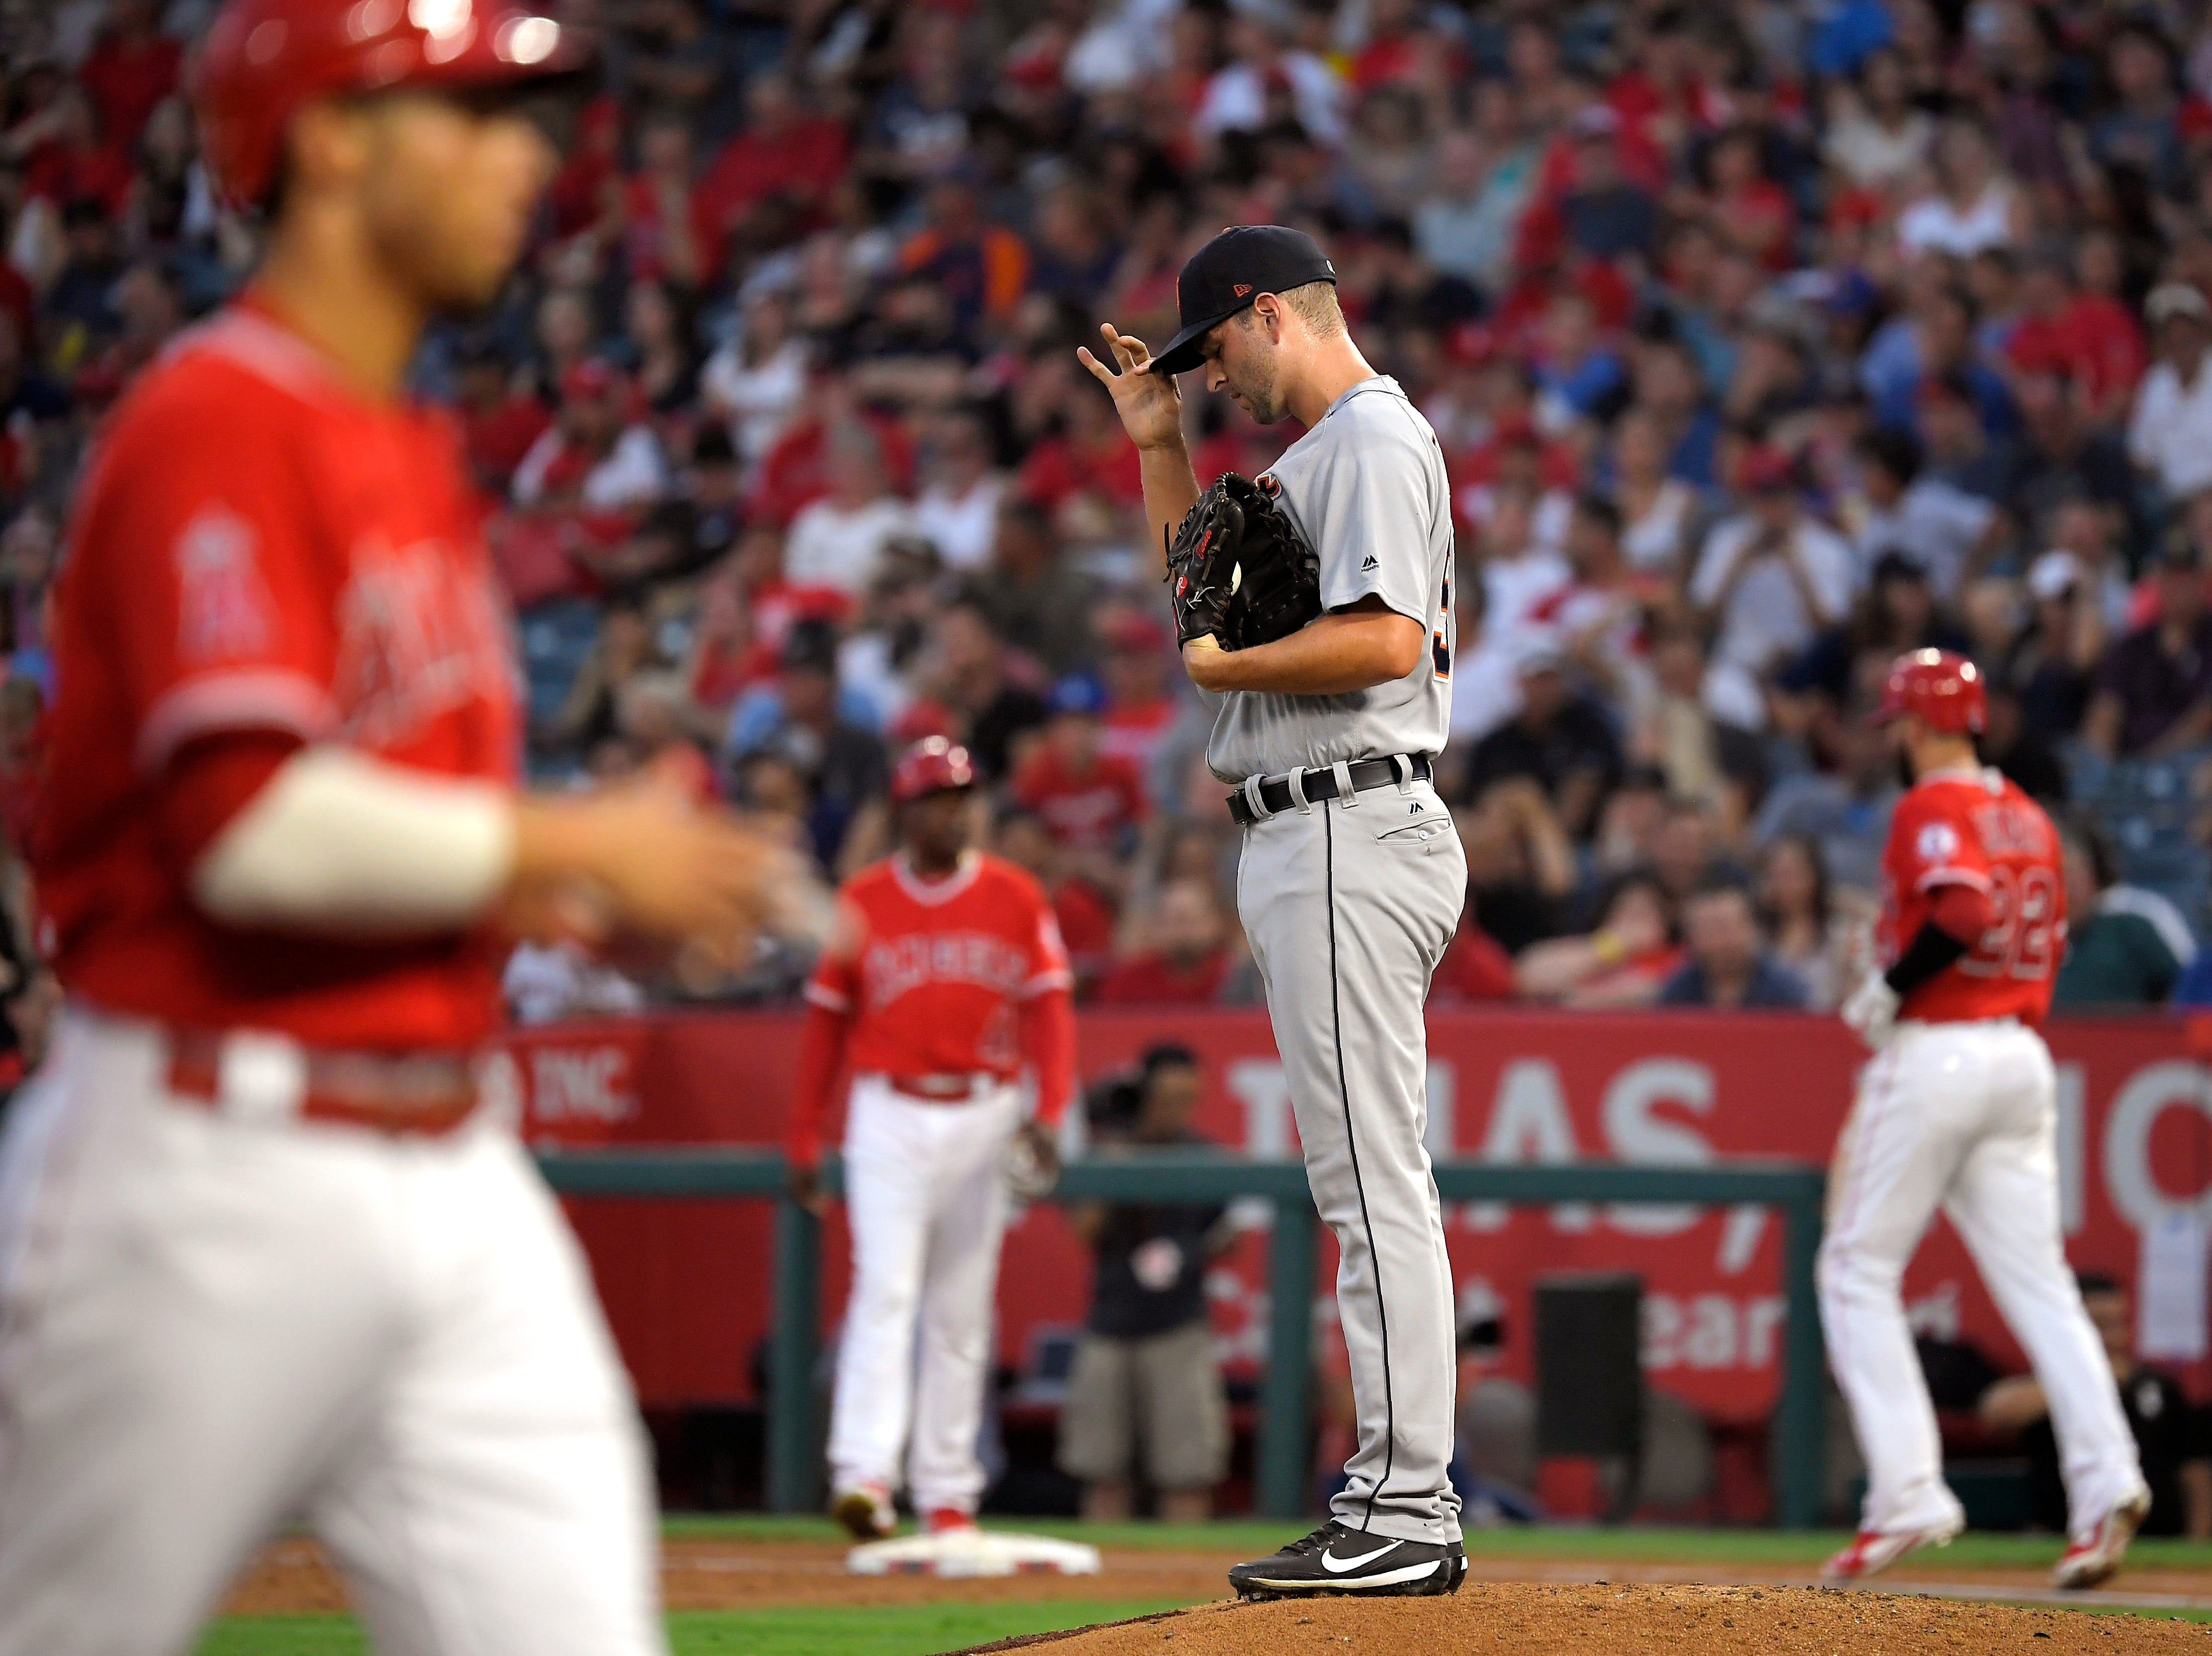 Tigers pitcher Jacob Turner, second from right, adjust his cap after walking in a run as Angels shortstop Andrelton Simmons, left, takes third and third baseman Kaleb Cowart, right, takes first during the first inning on Tuesday, Aug. 7, 2018, in Anaheim, Calif.